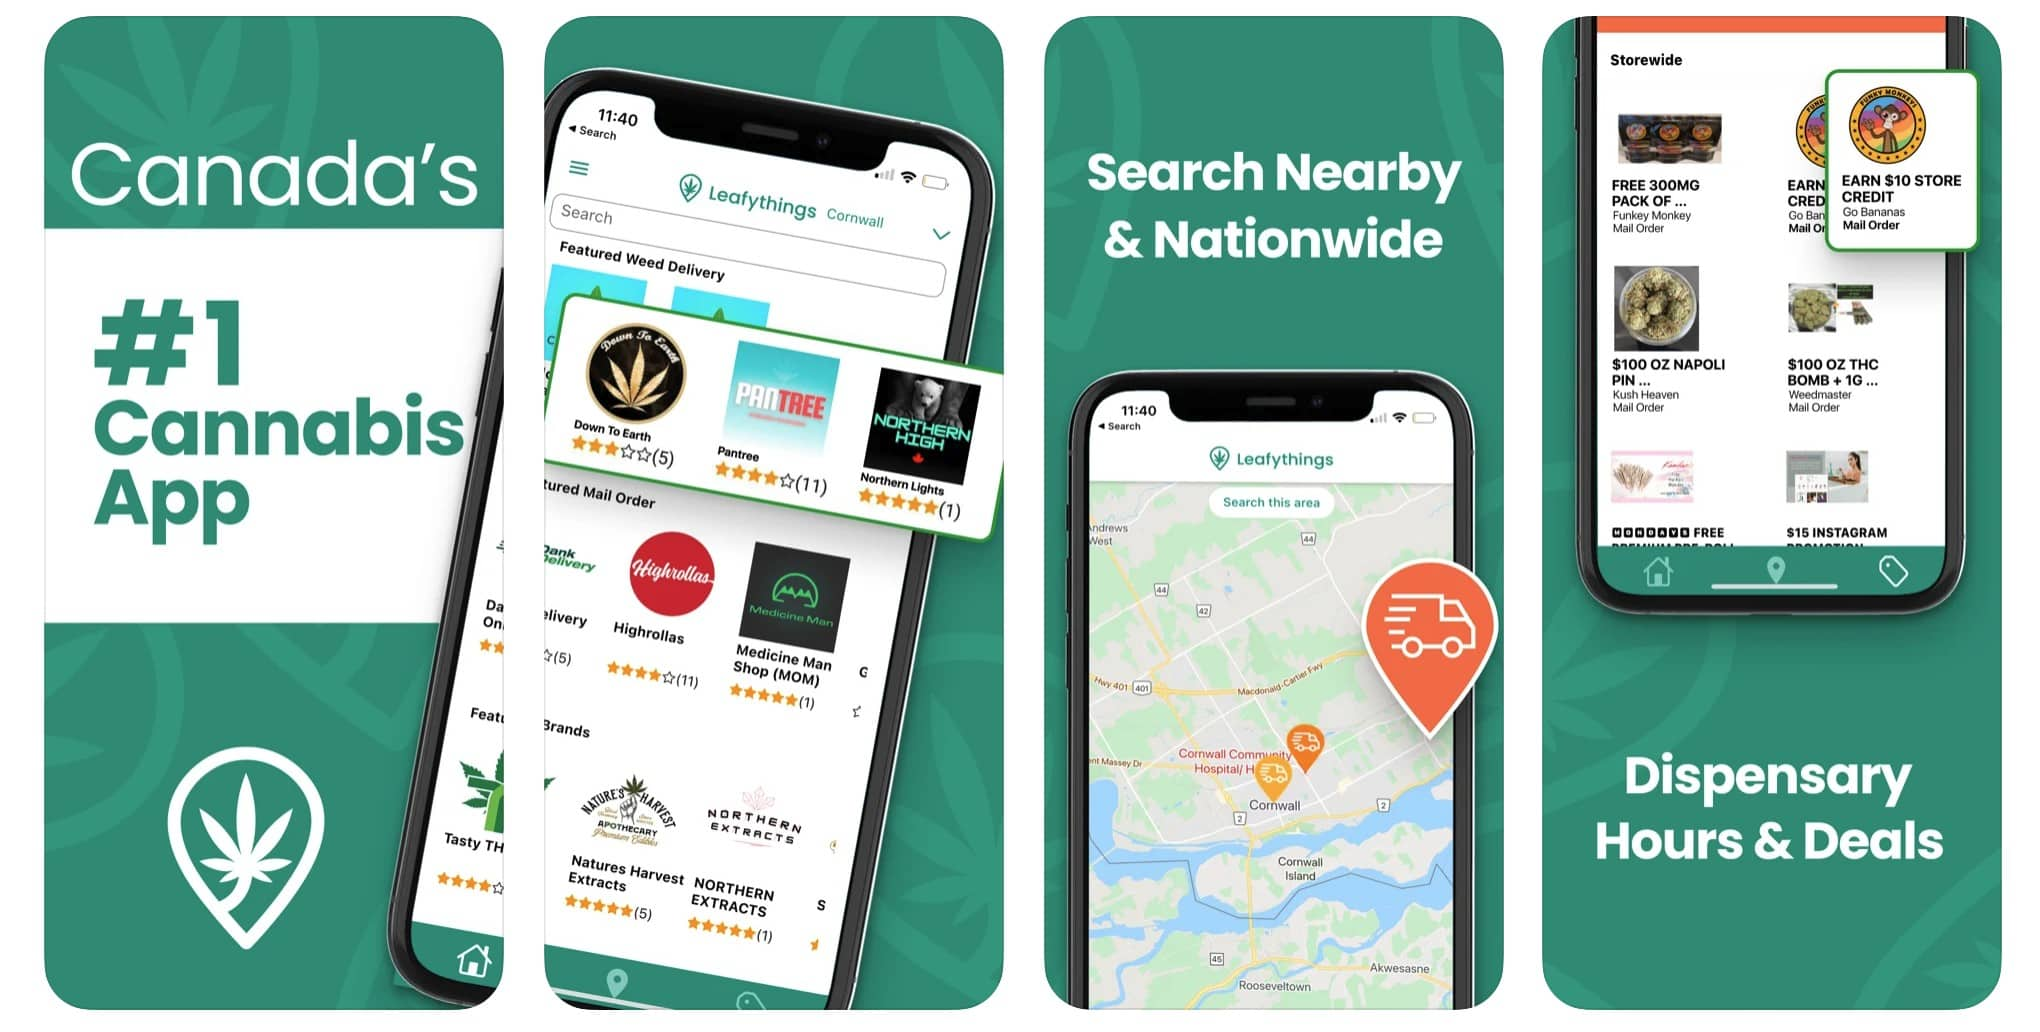 Leafythings: As Canada's legal marijuana market continues to grow like an, ahem, weed, new app Leafythings stands ready to connect cannabis consumers and producers alike. It offers accurate, up-to-date info on marijuana and CBD products, as well as a handy directory of licensed providers.